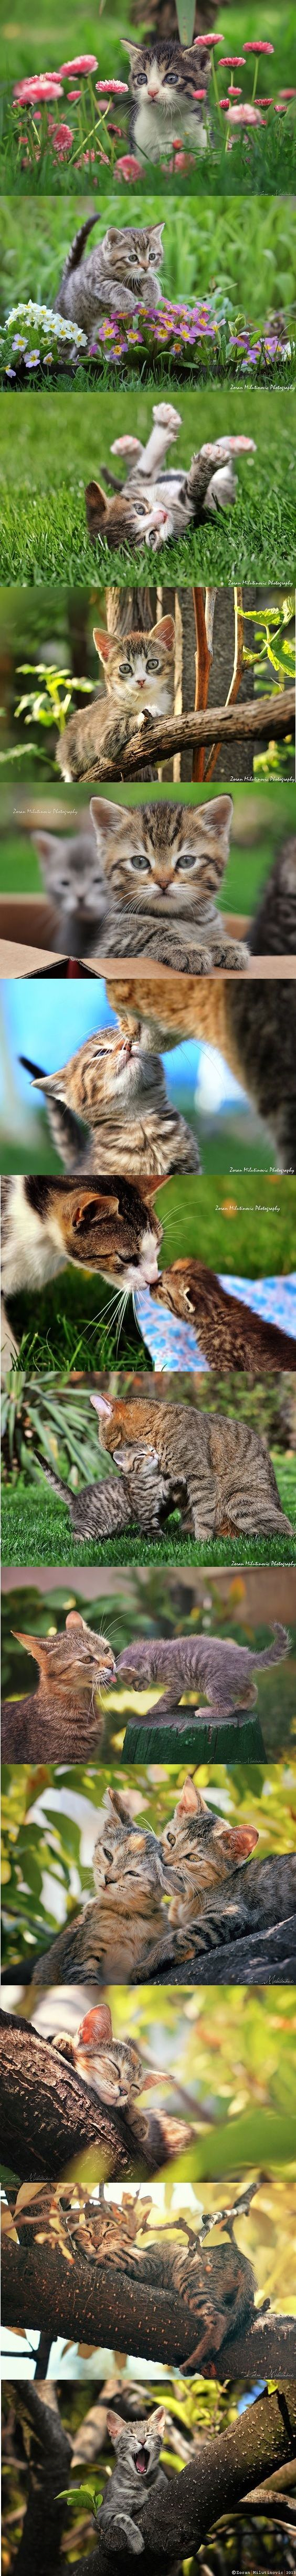 KITTEN photos by ZoranPhoto on DeviantArt #cat cats kitty kitten animal pet cute adorable nature